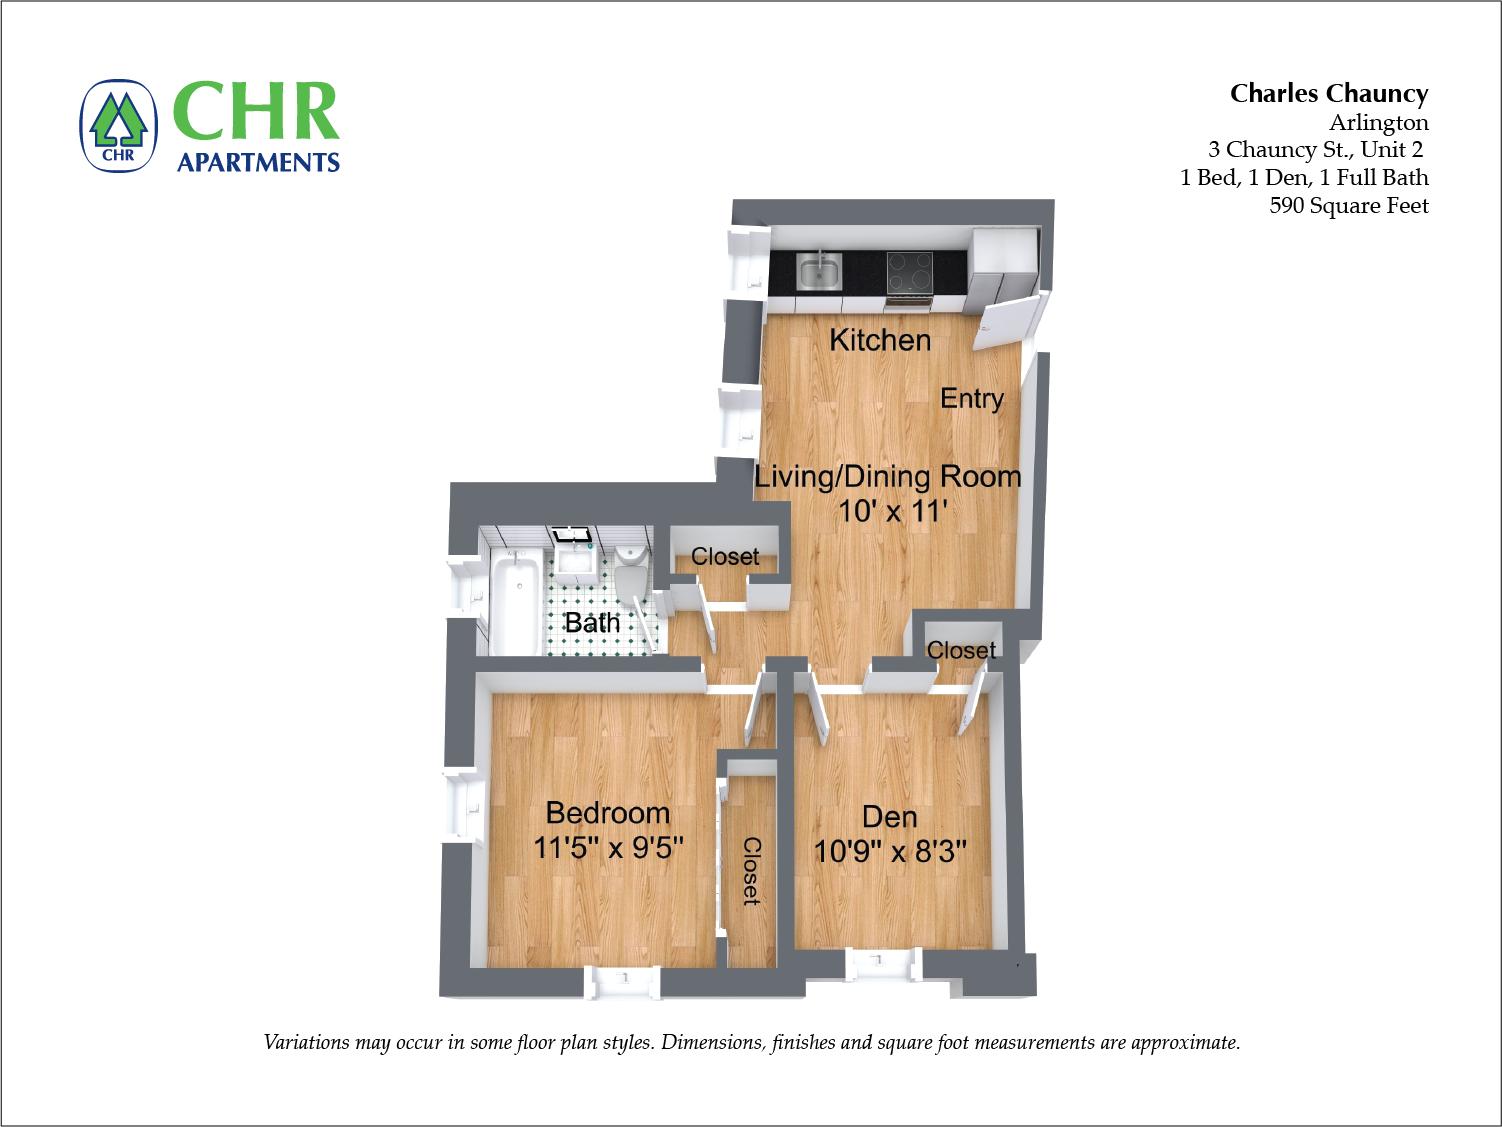 Click to view Charles Chauncy - 2 Bedroom (Newly Renovated) floor plan gallery